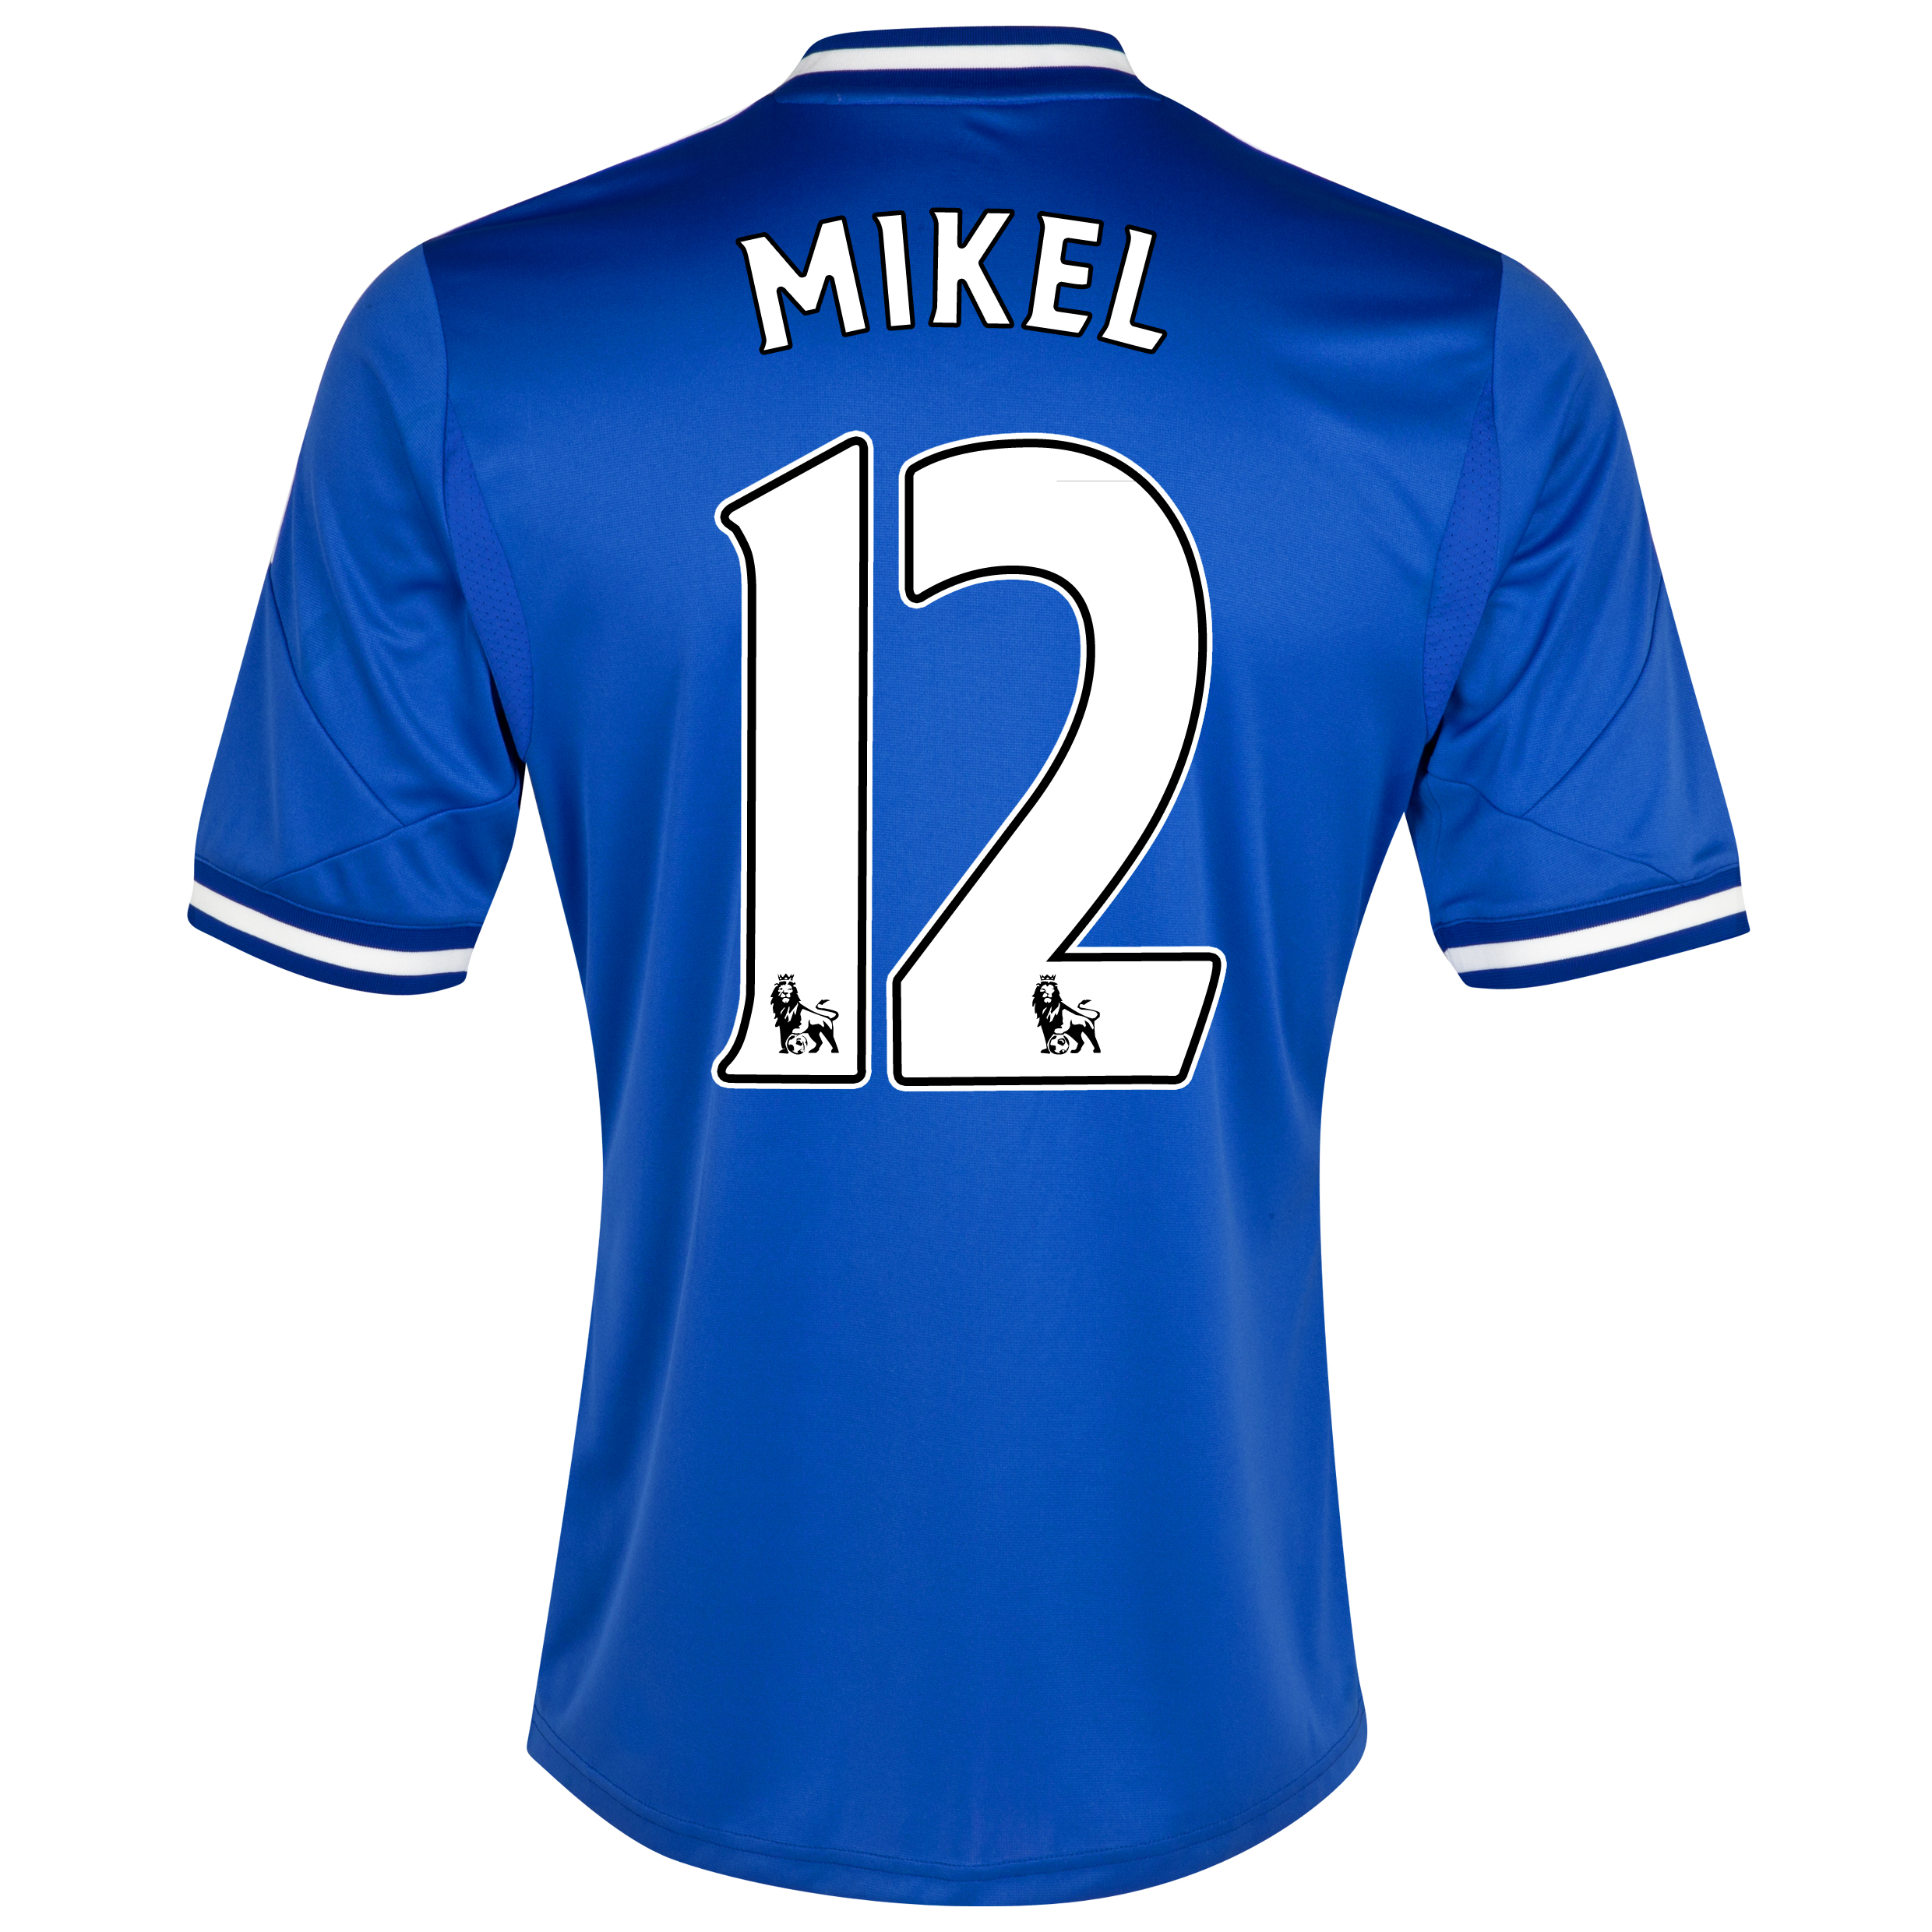 Chelsea Home Shirt 2013/14 with Mikel 12 printing